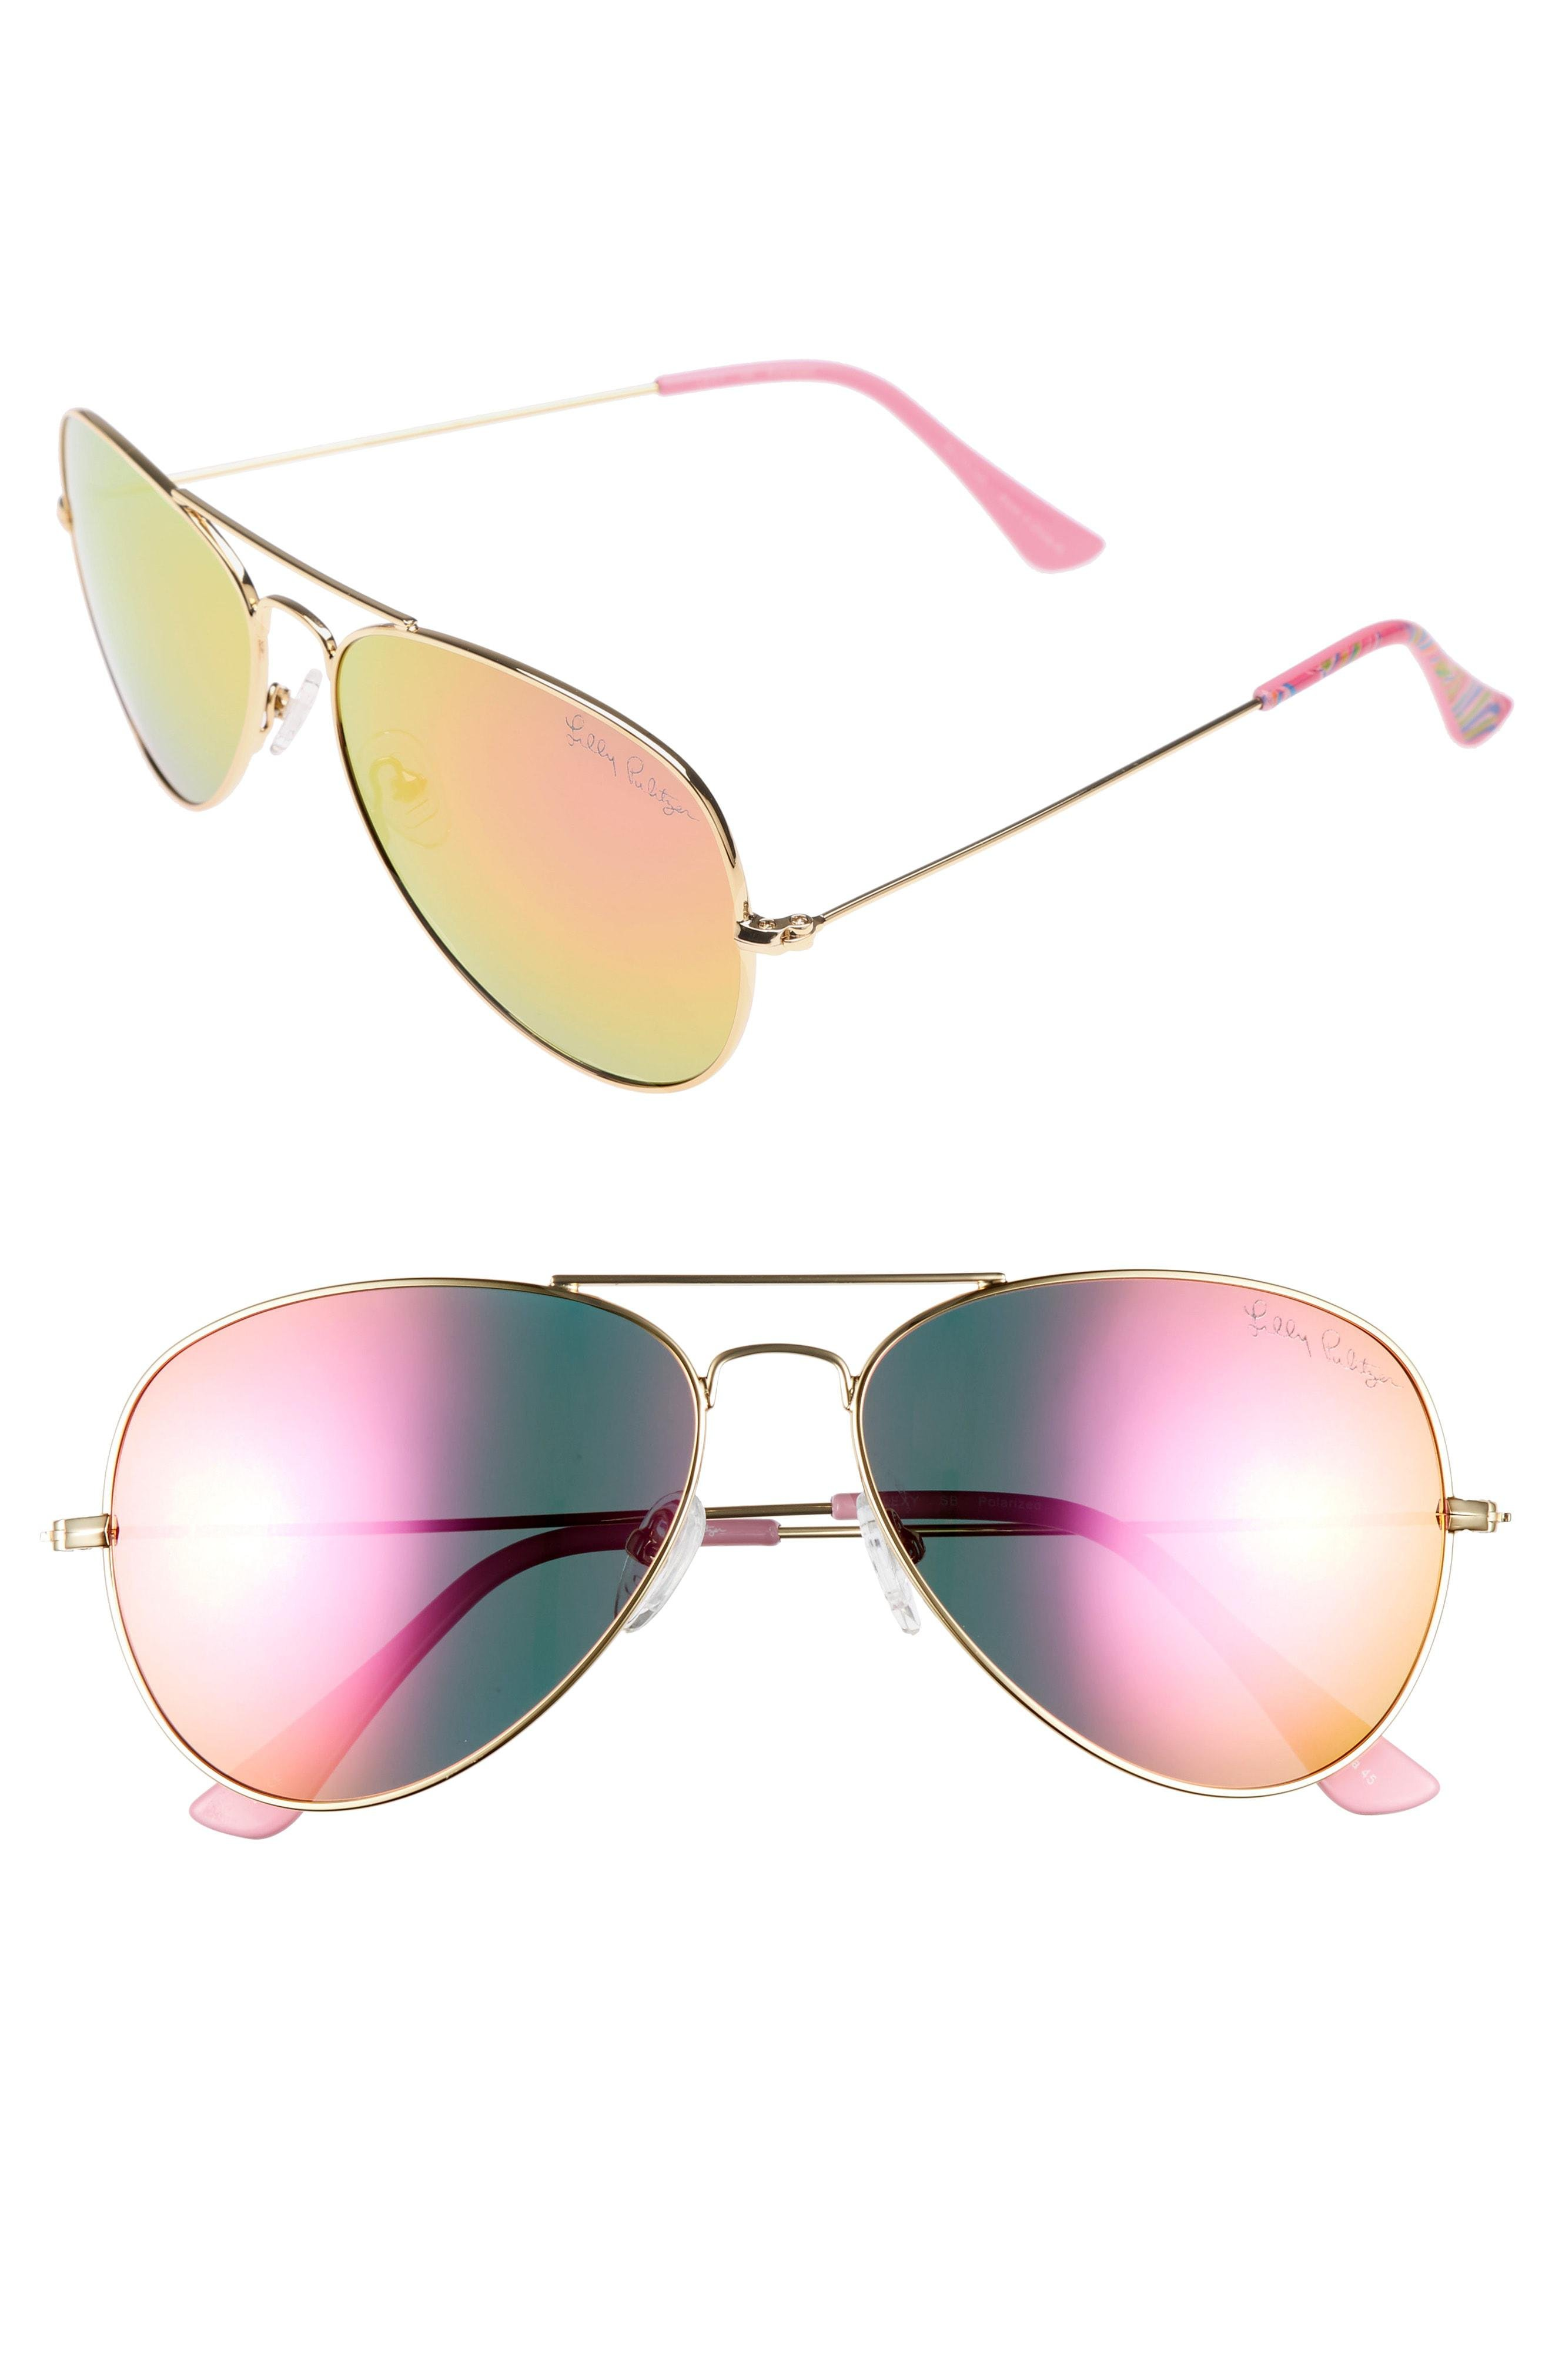 0743f2dcfe0 Lilly Pulitzer. Women s Pink Lilly Pulitzer Lexy 59mm Polarized Aviator  Sunglasses